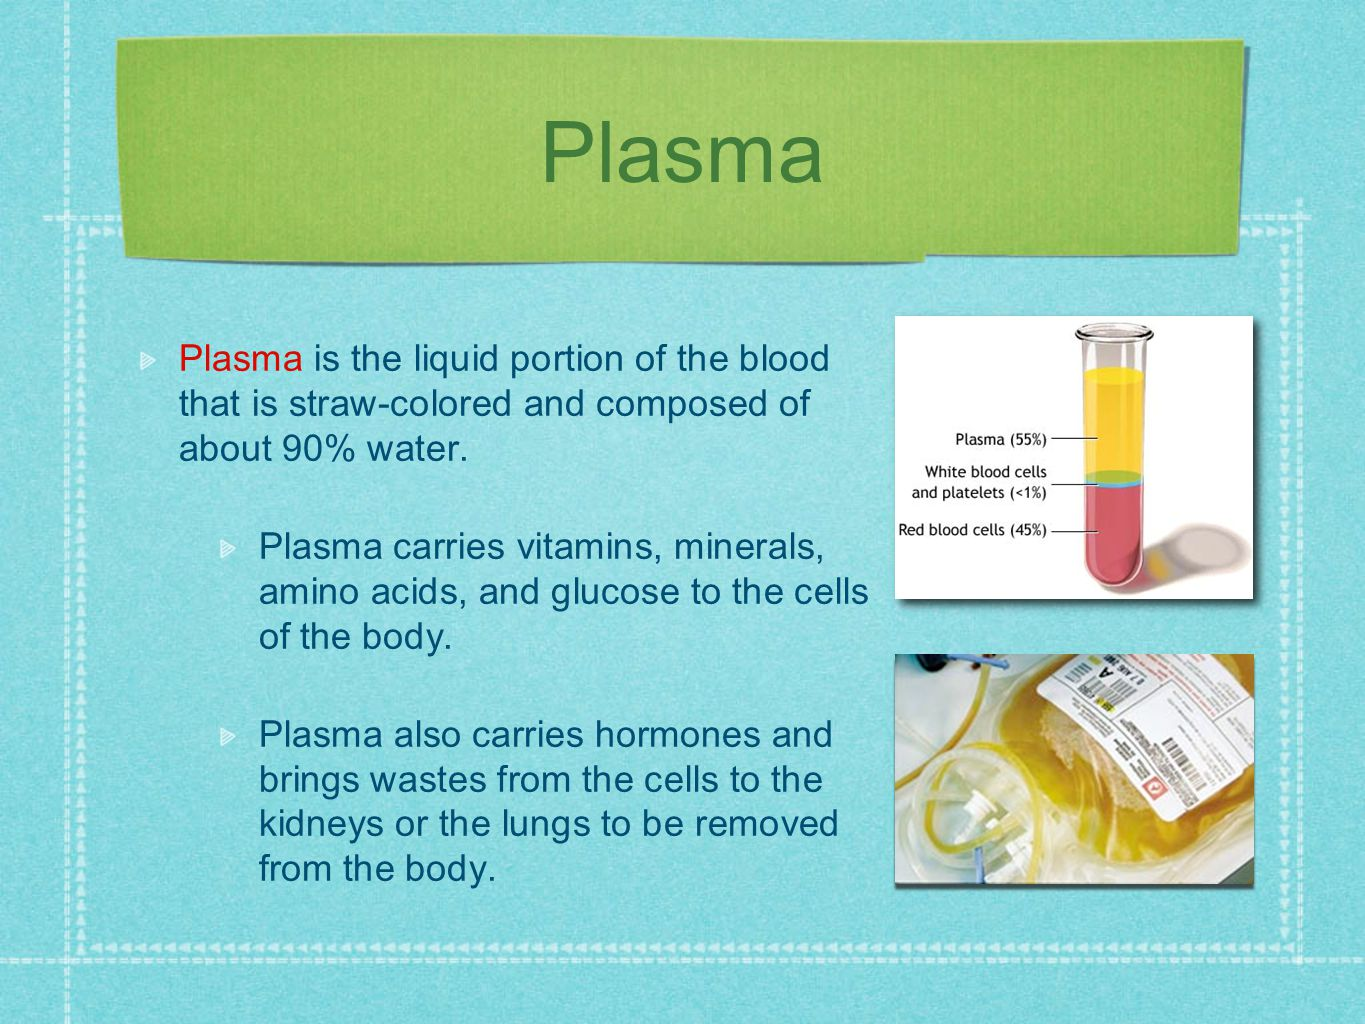 Plasma is the liquid portion of the blood that is straw-colored and composed of about 90% water. Plasma carries vitamins, minerals, amino acids, and g